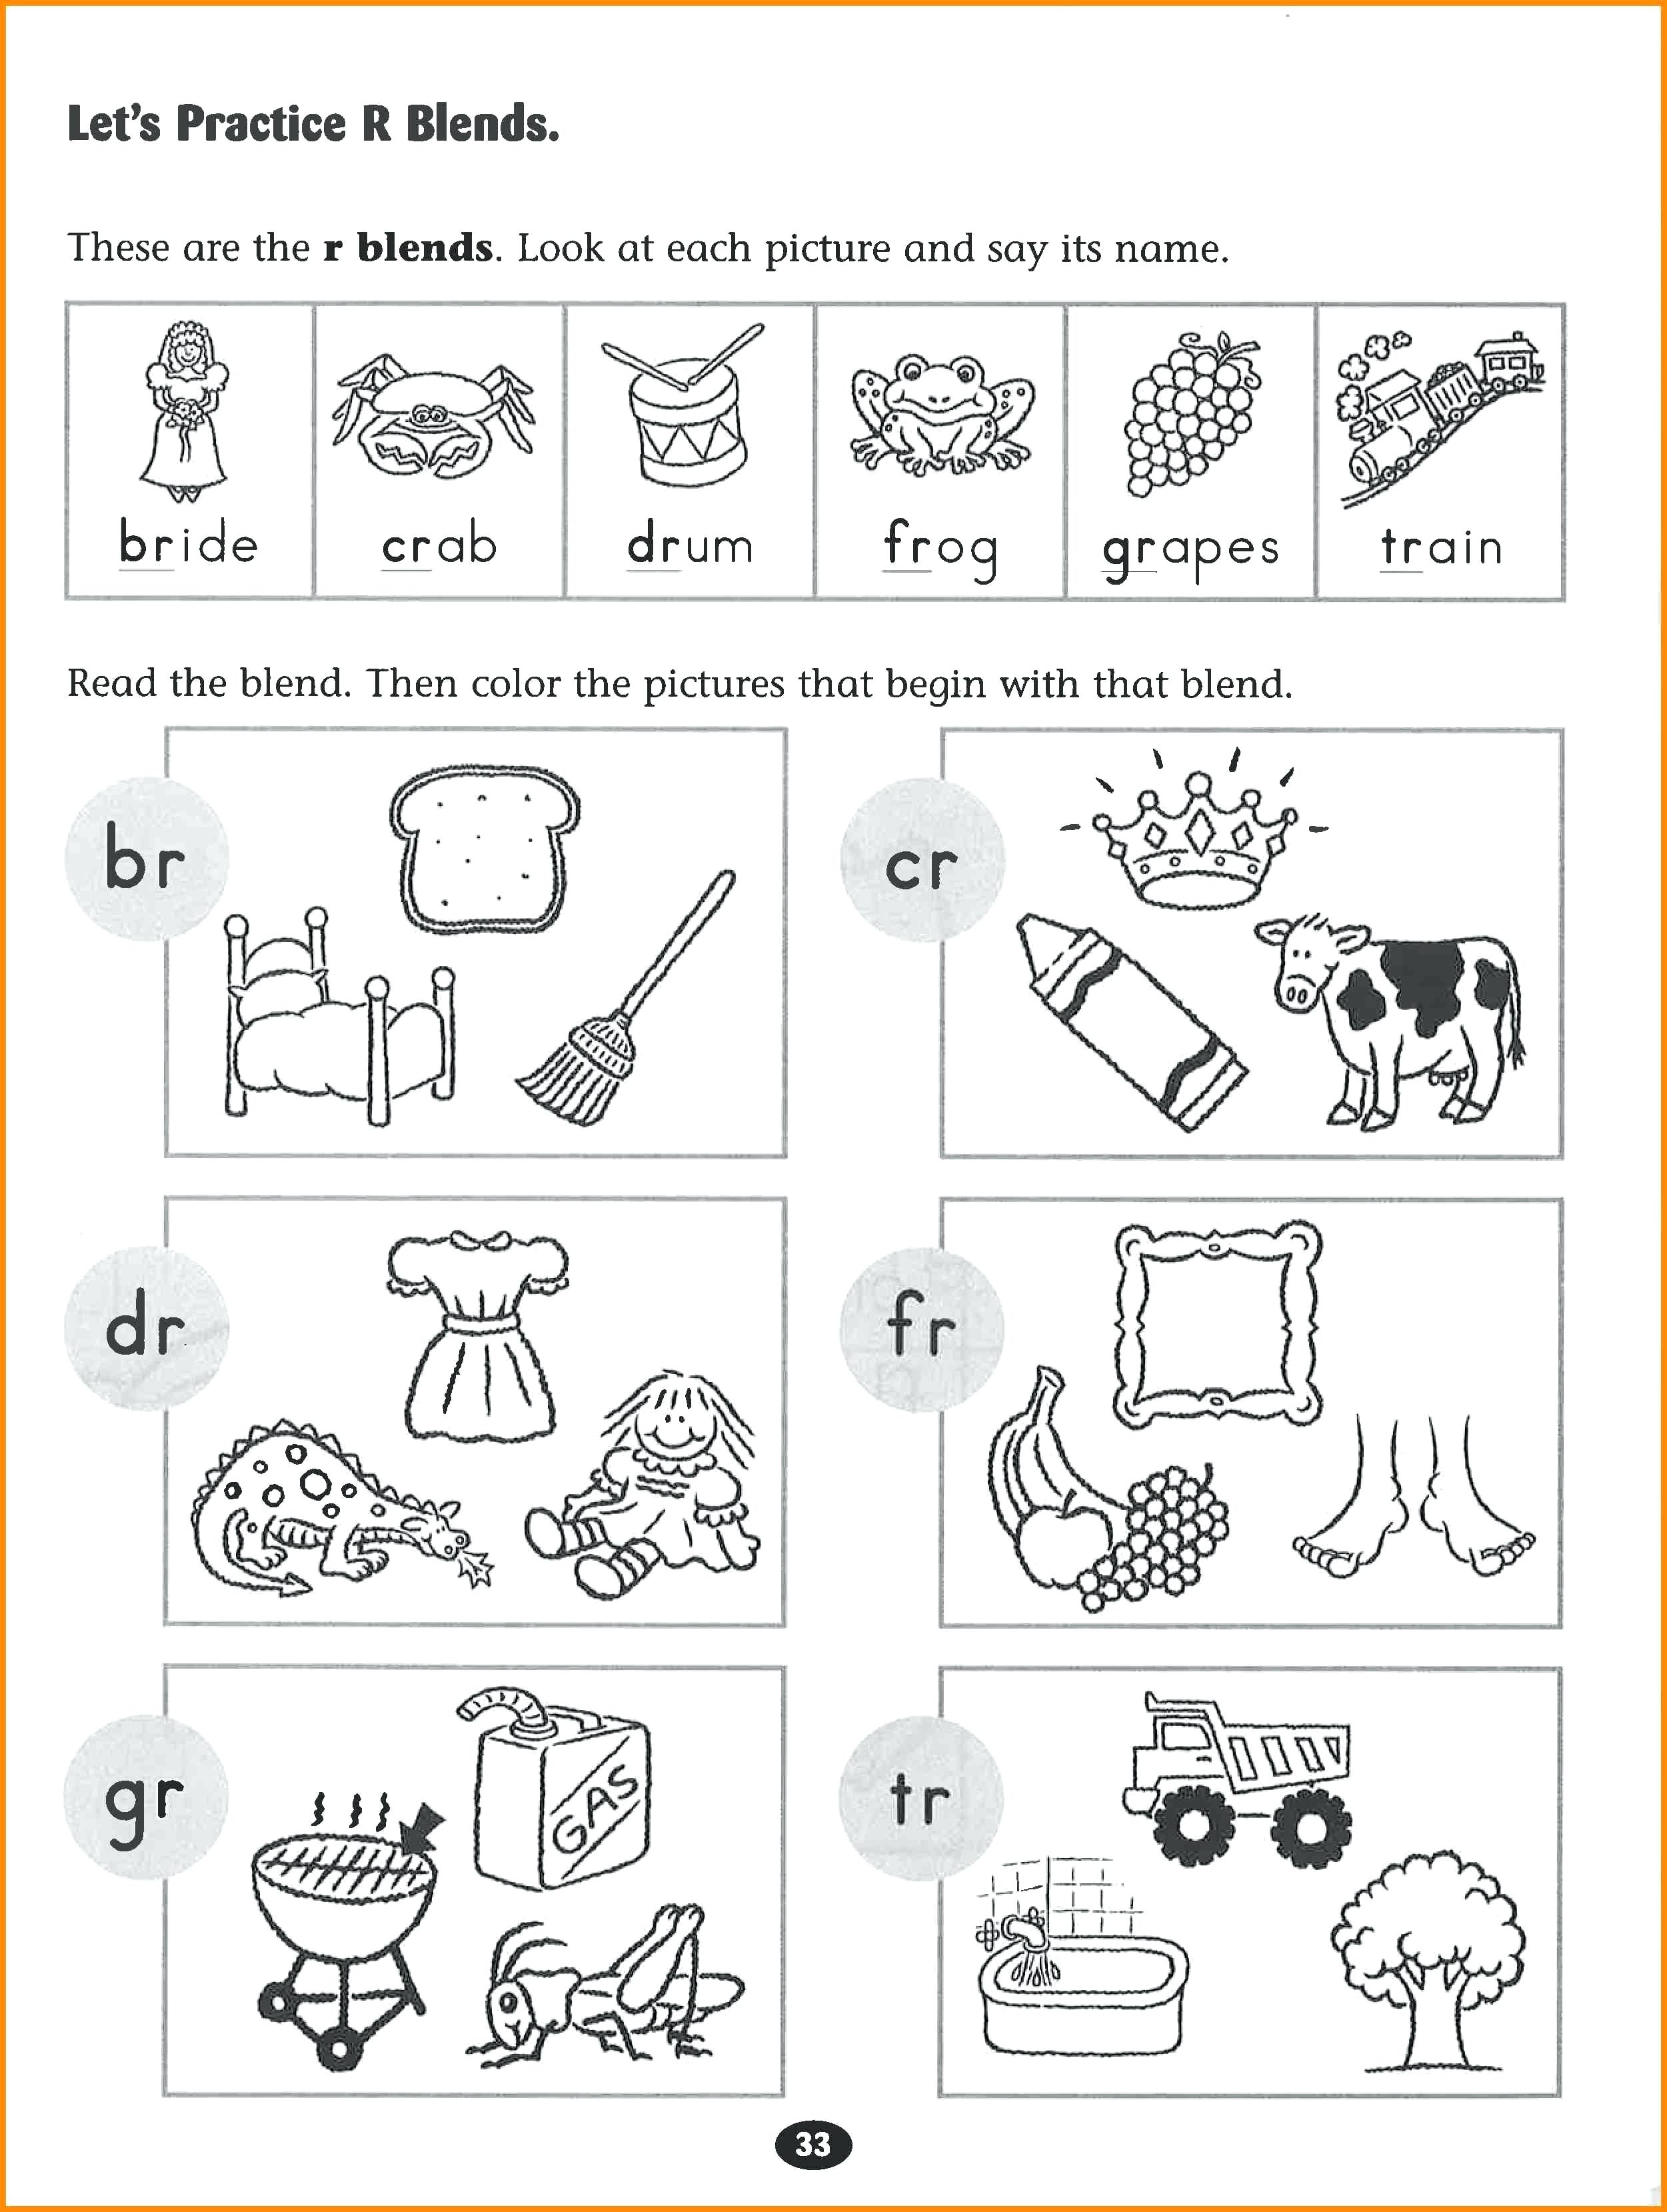 Kindergarten: Halloween Arts And Crafts Activities For Kids | Free Printable Arts And Crafts Worksheets